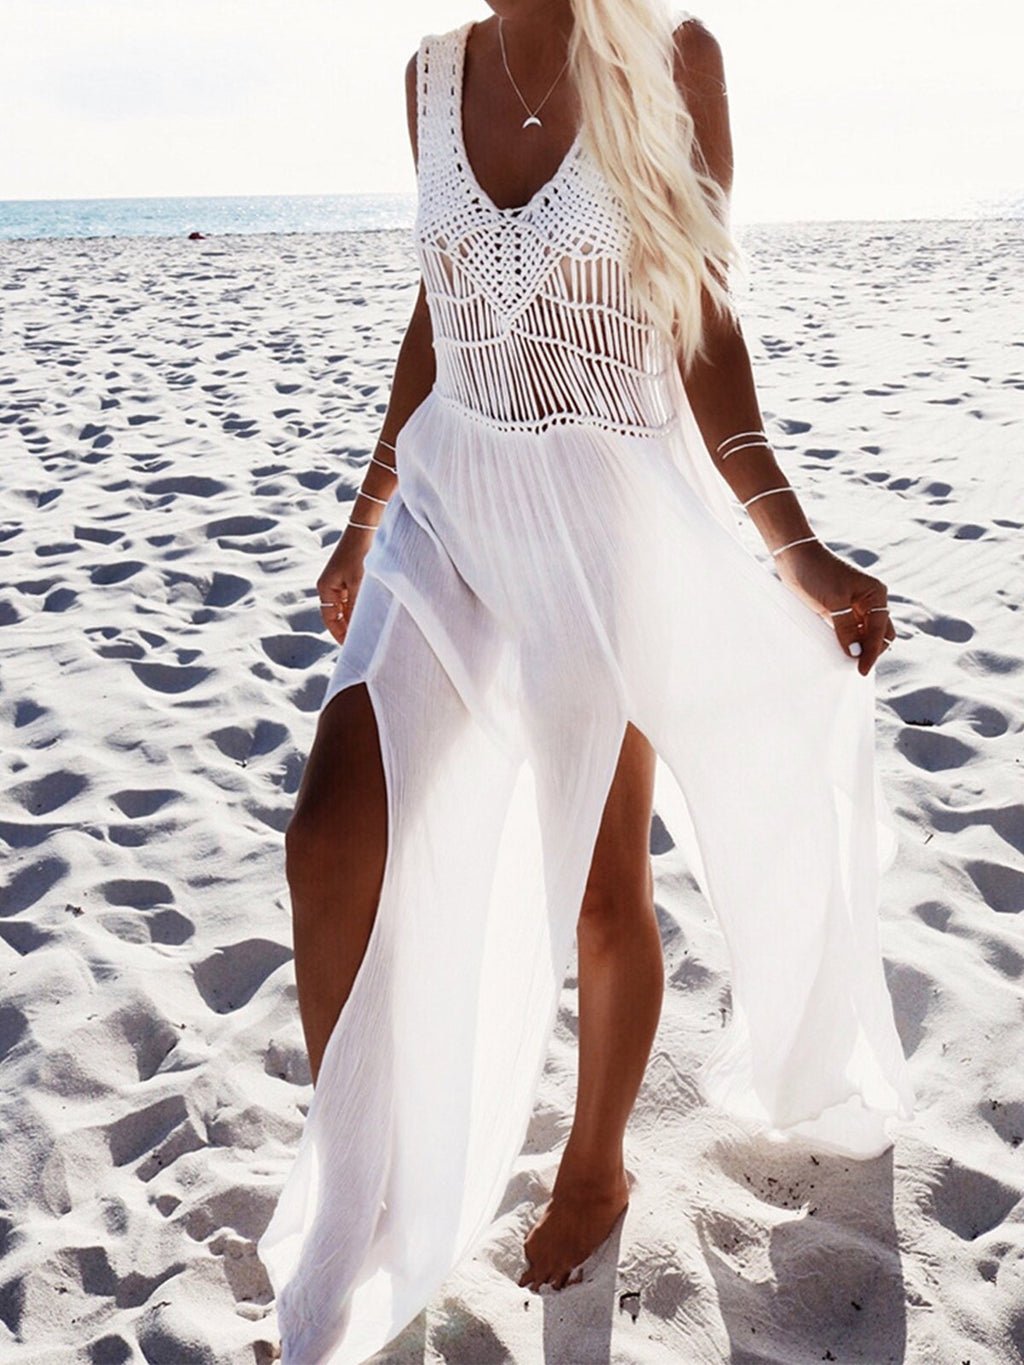 White Chiffon Hollow Beach Cover-up Dress